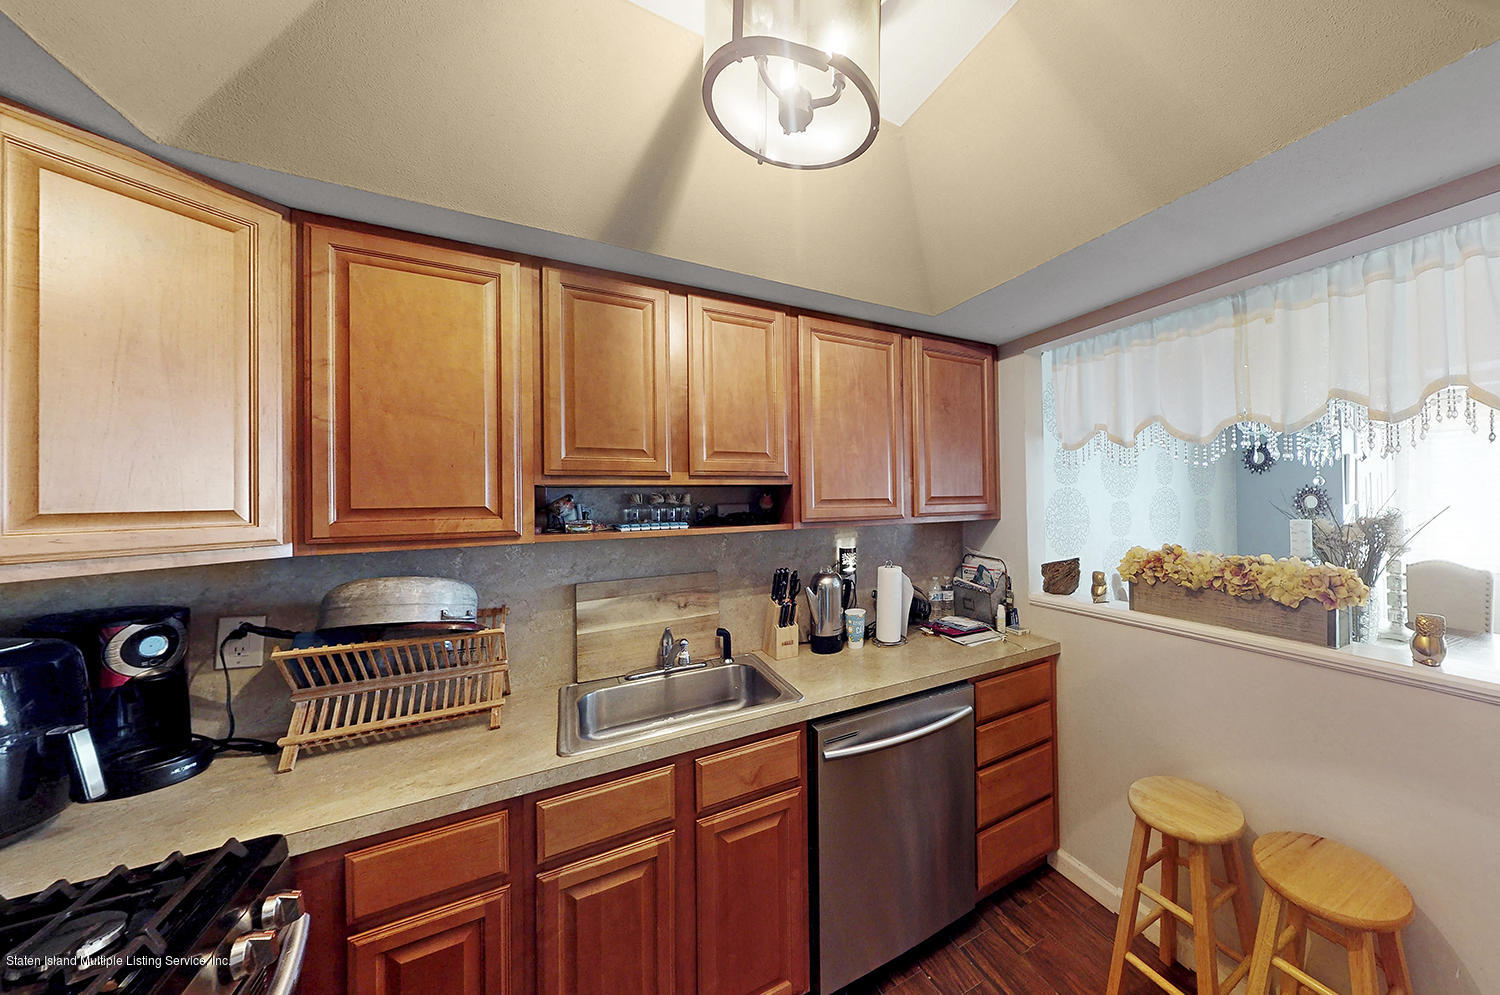 Single Family - Attached 10 Greentree Lane A  Staten Island, NY 10314, MLS-1131041-8